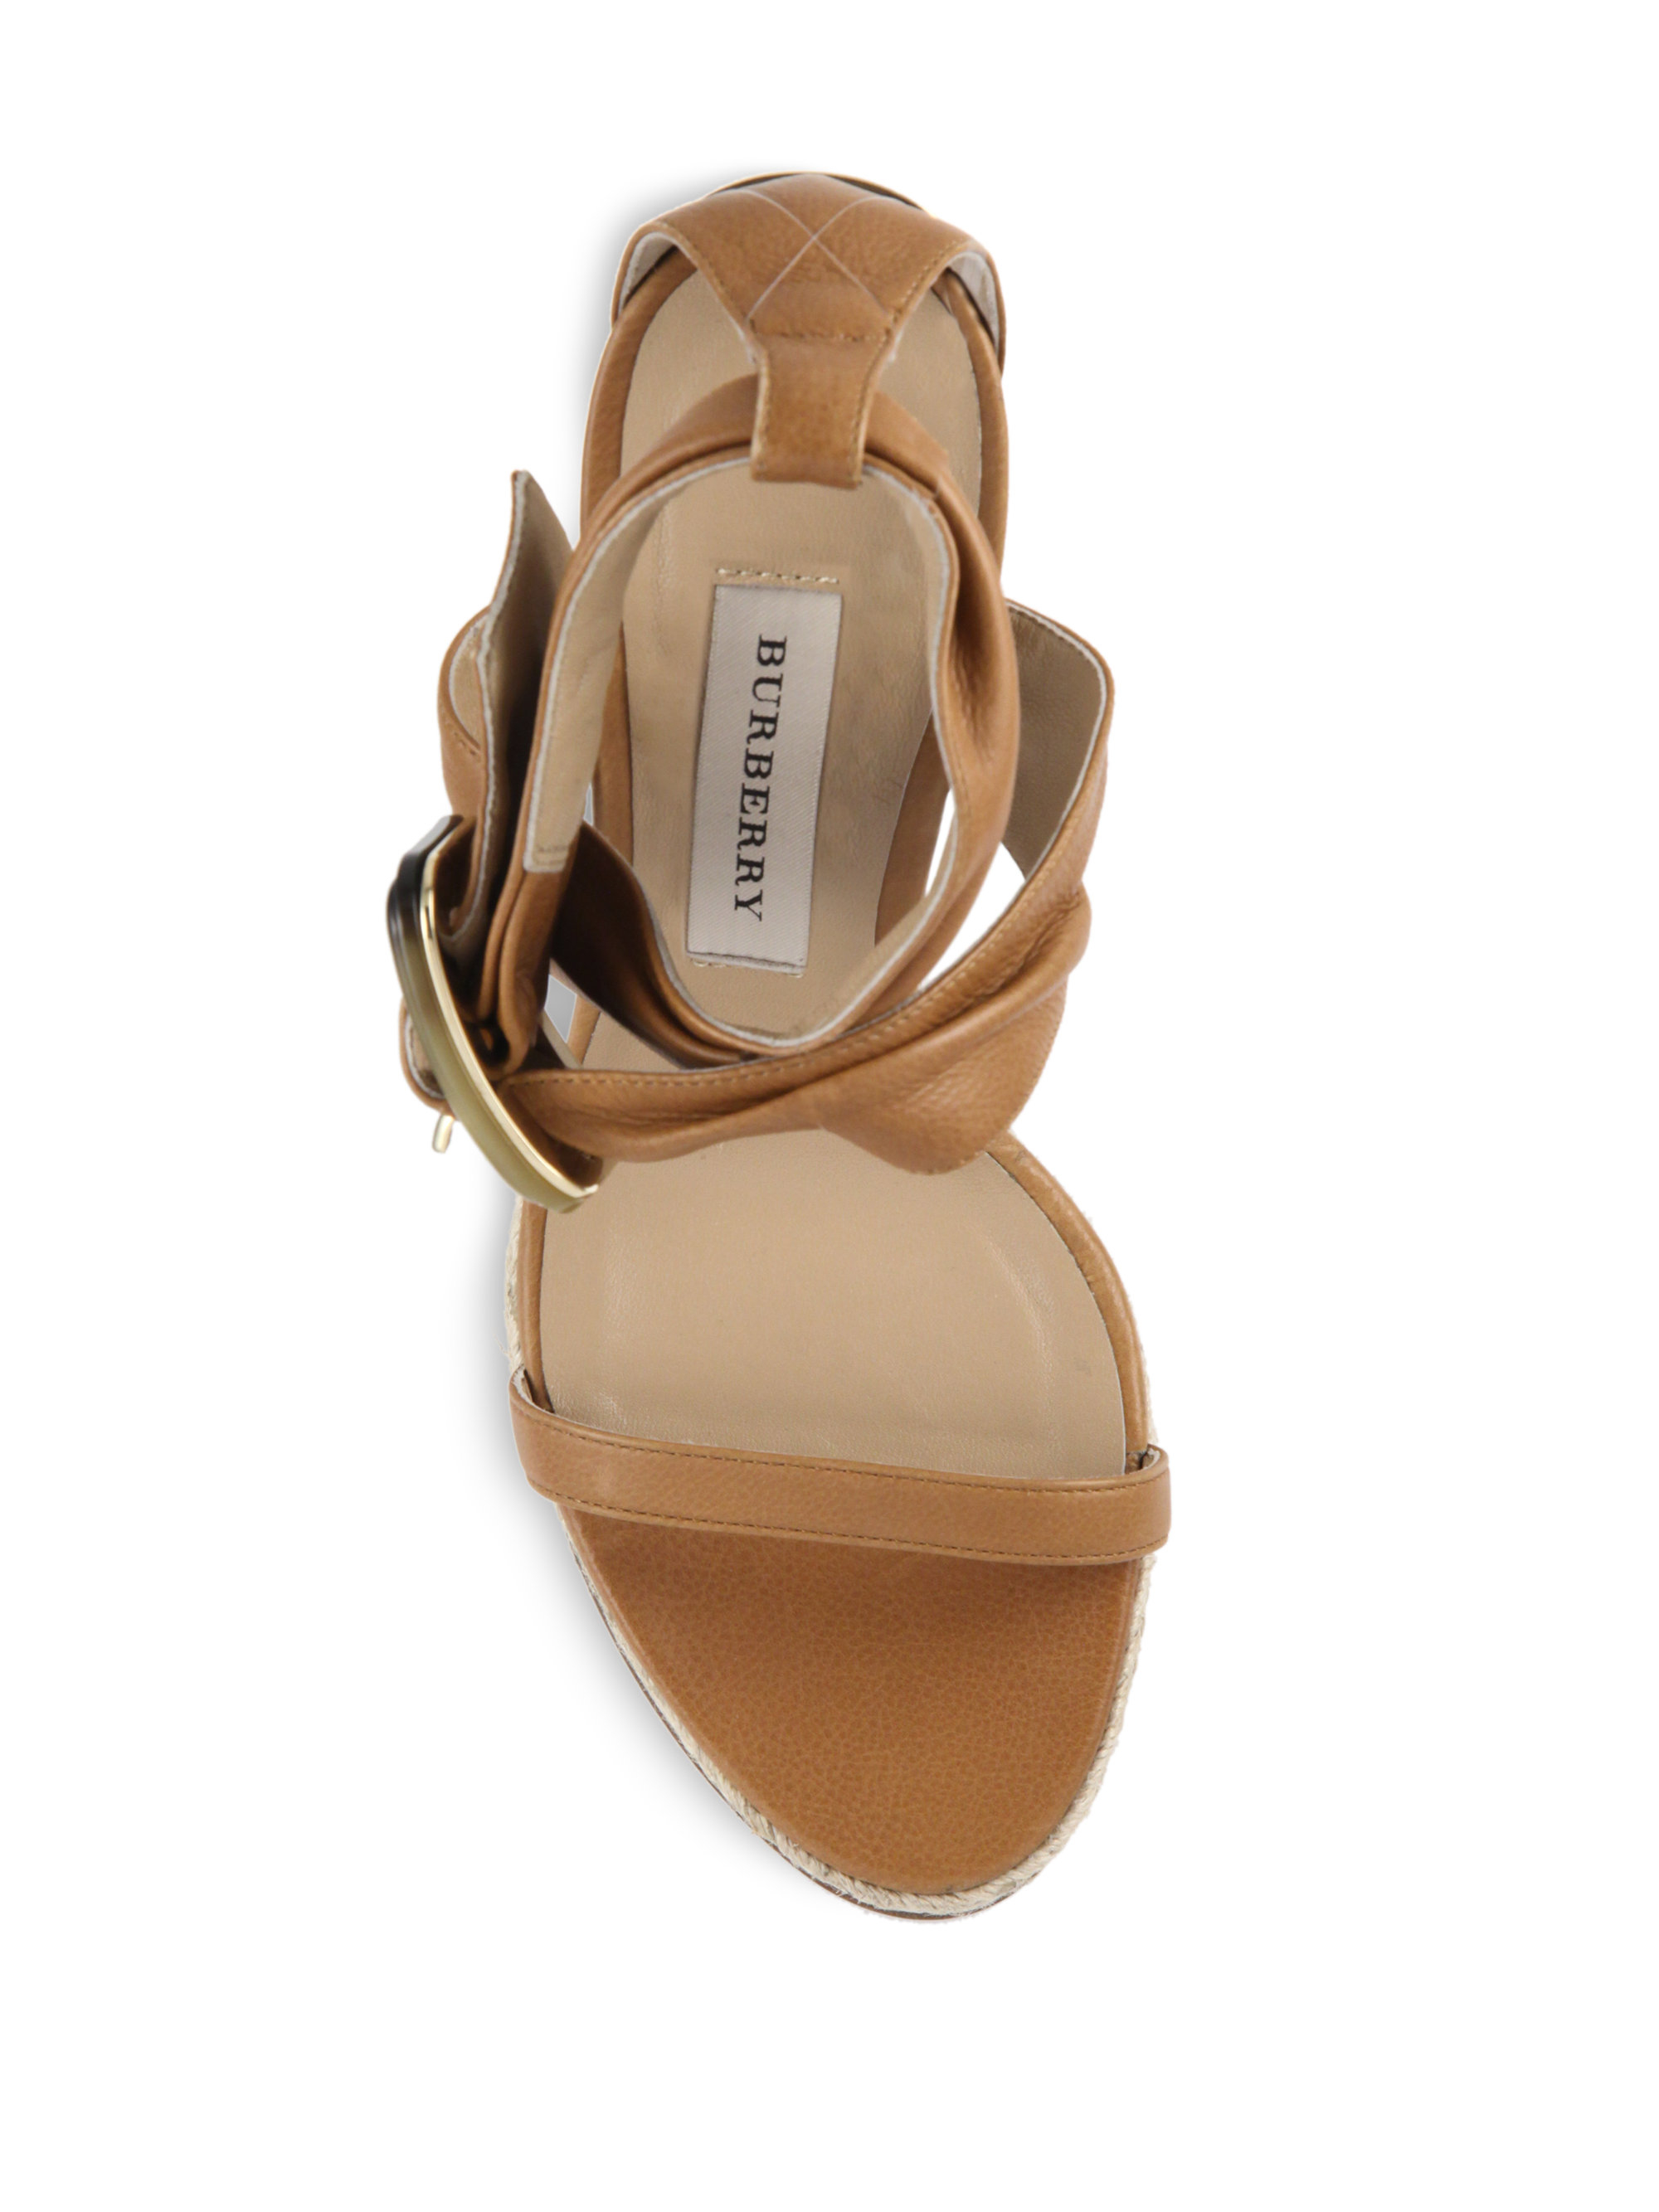 0d4fd9382c7 Burberry Brown Catsbrook Leather Espadrille Wedge Sandals